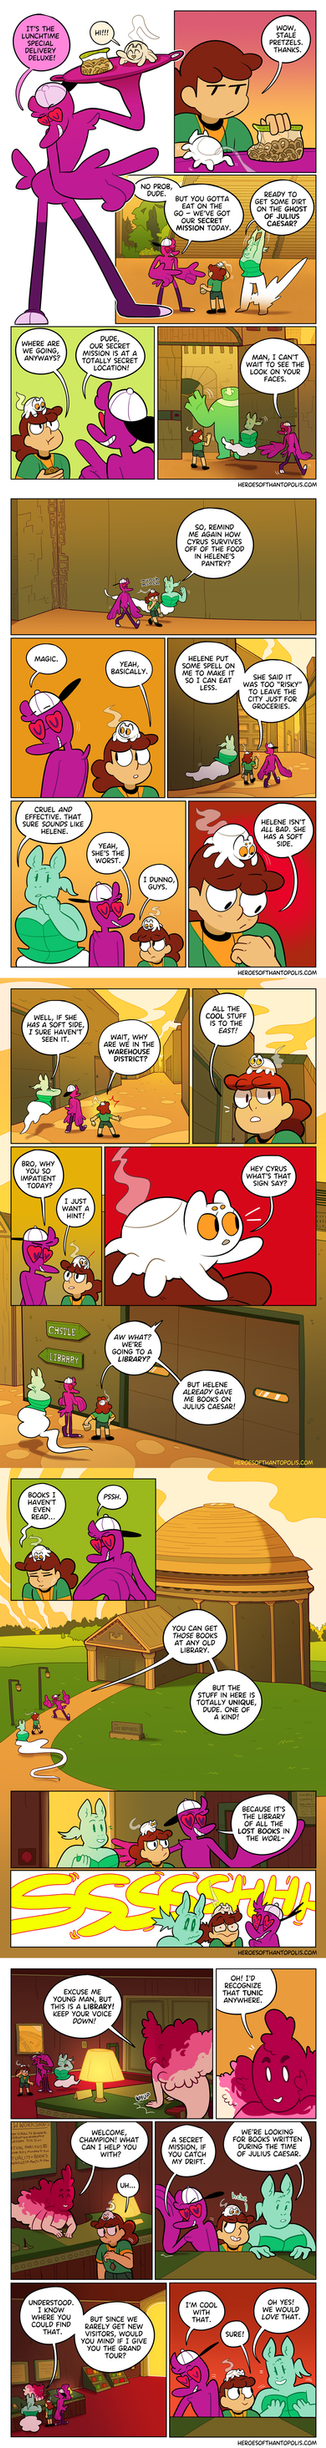 Heroes of Thantopolis Ch5 6-10 by Strontium-Chloride